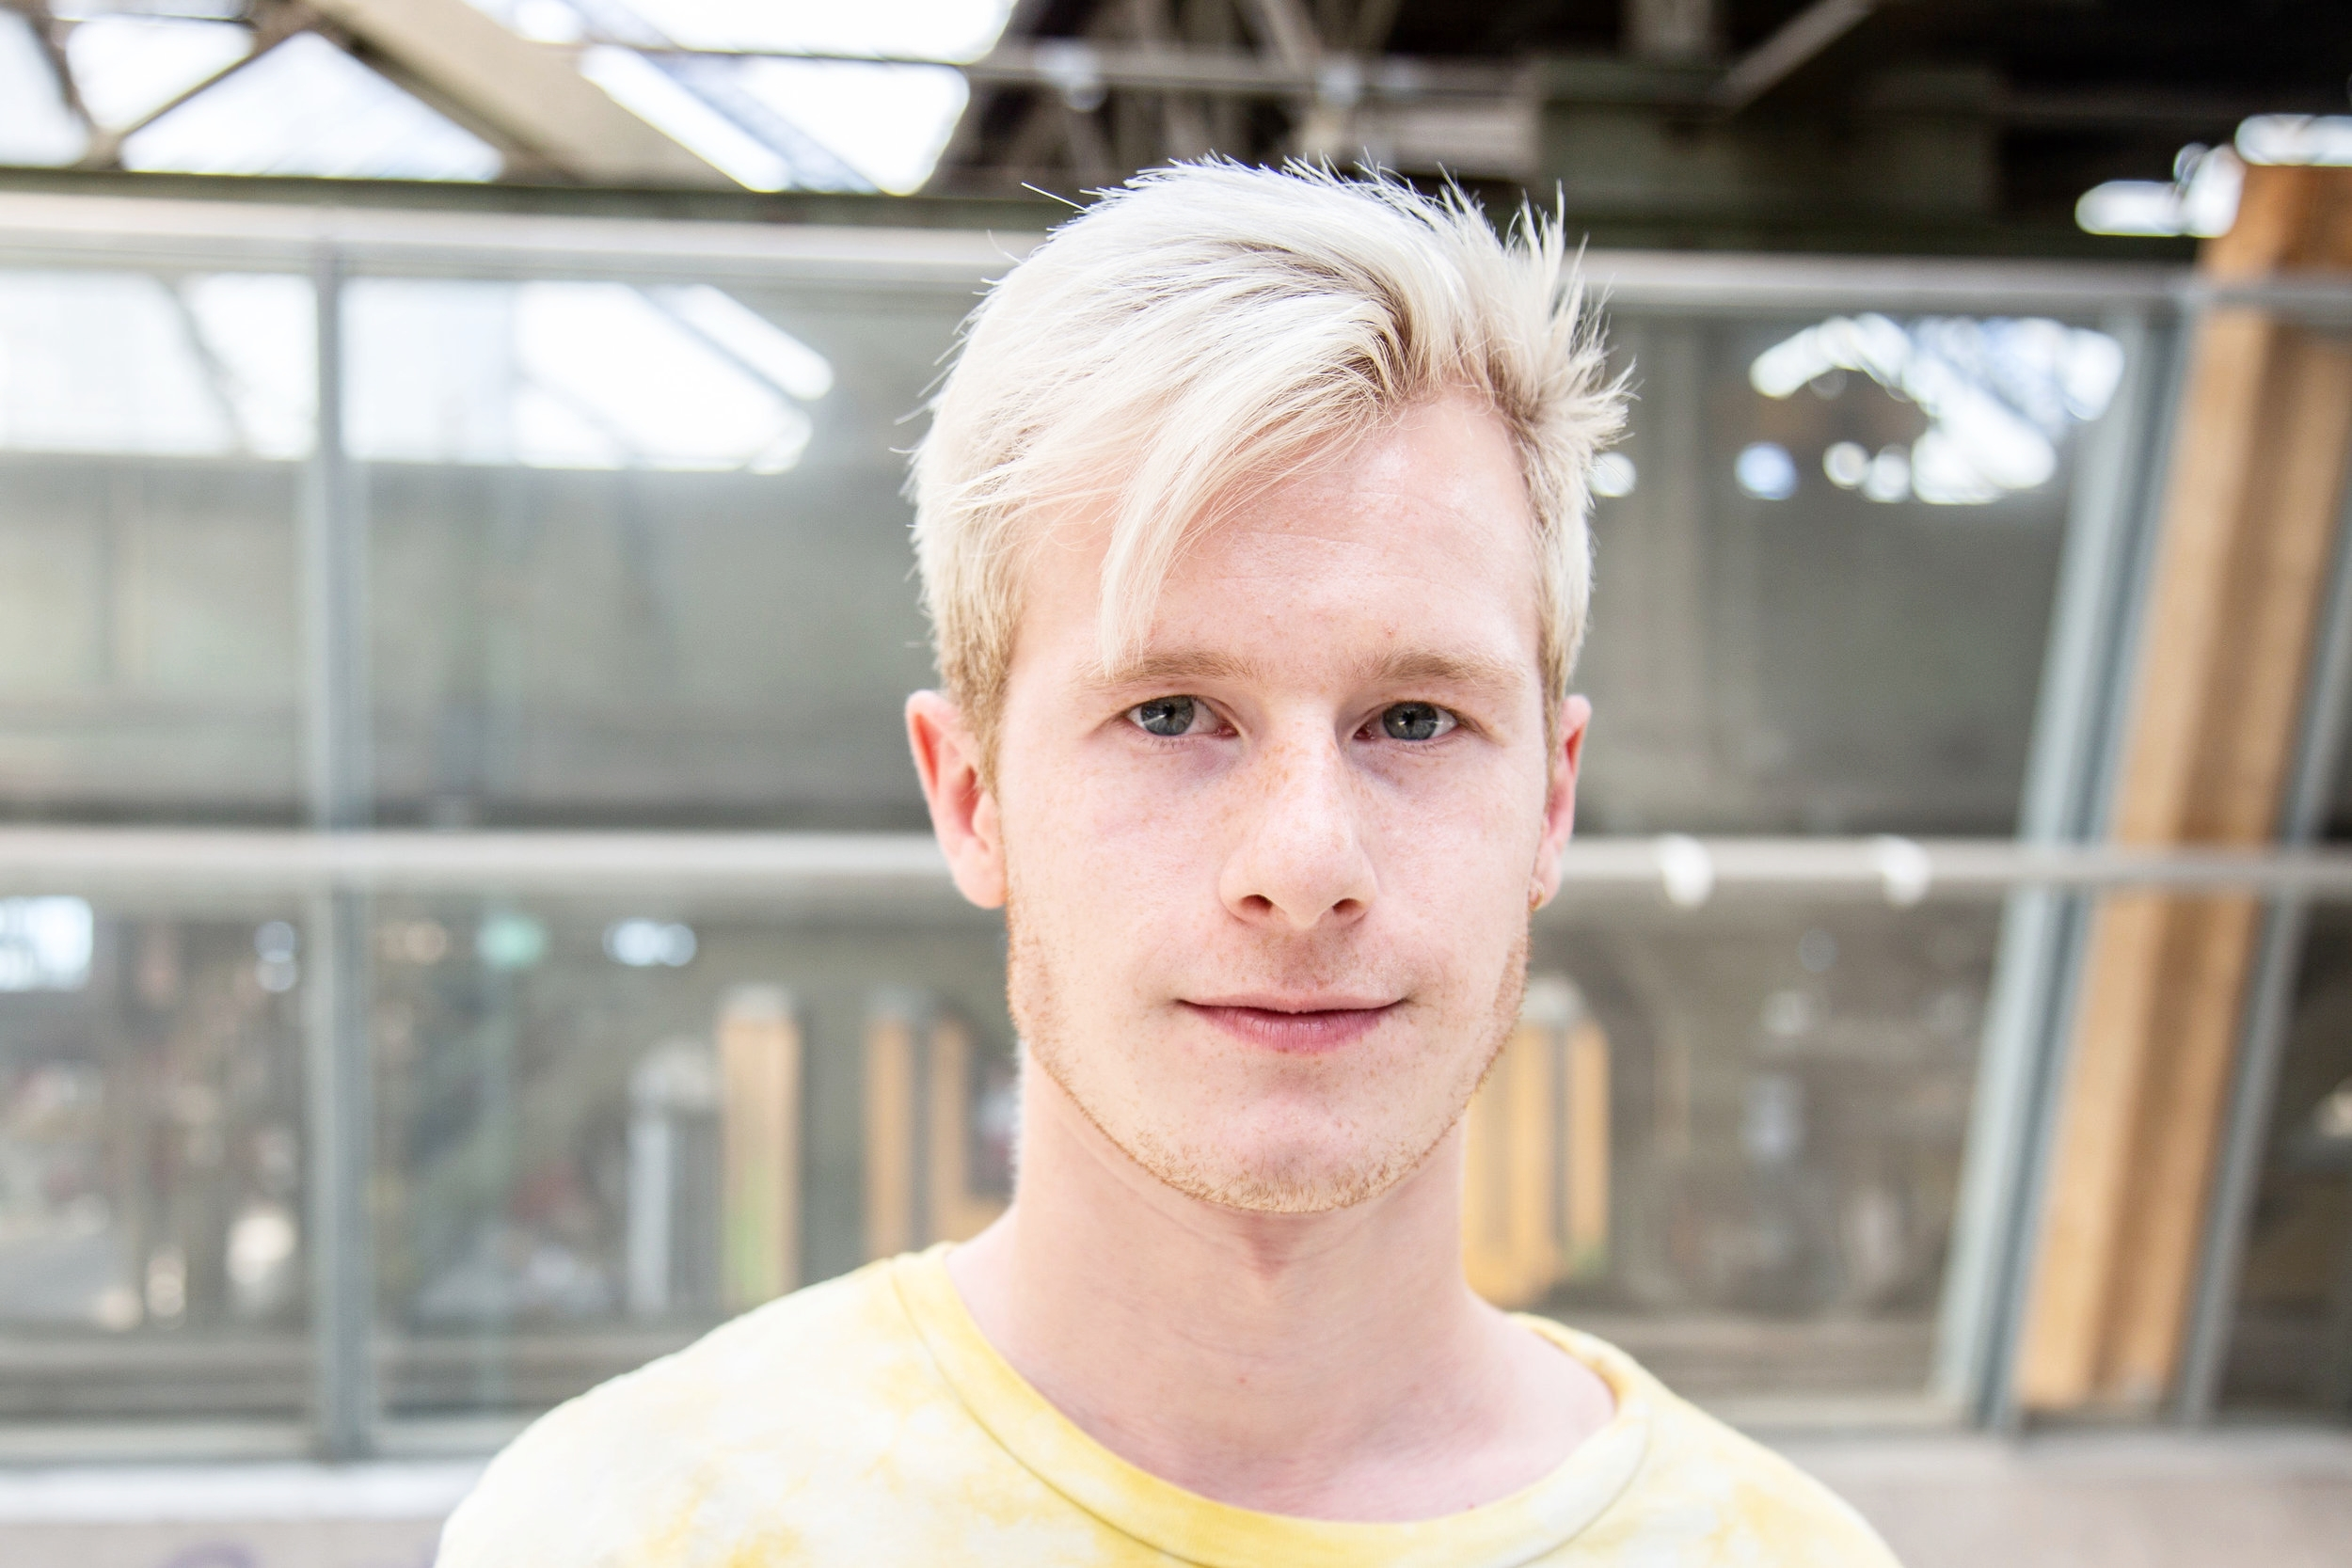 """""""I think an ally's job is to help spread the message of equality."""" - READ BRADLEY'S STORY"""